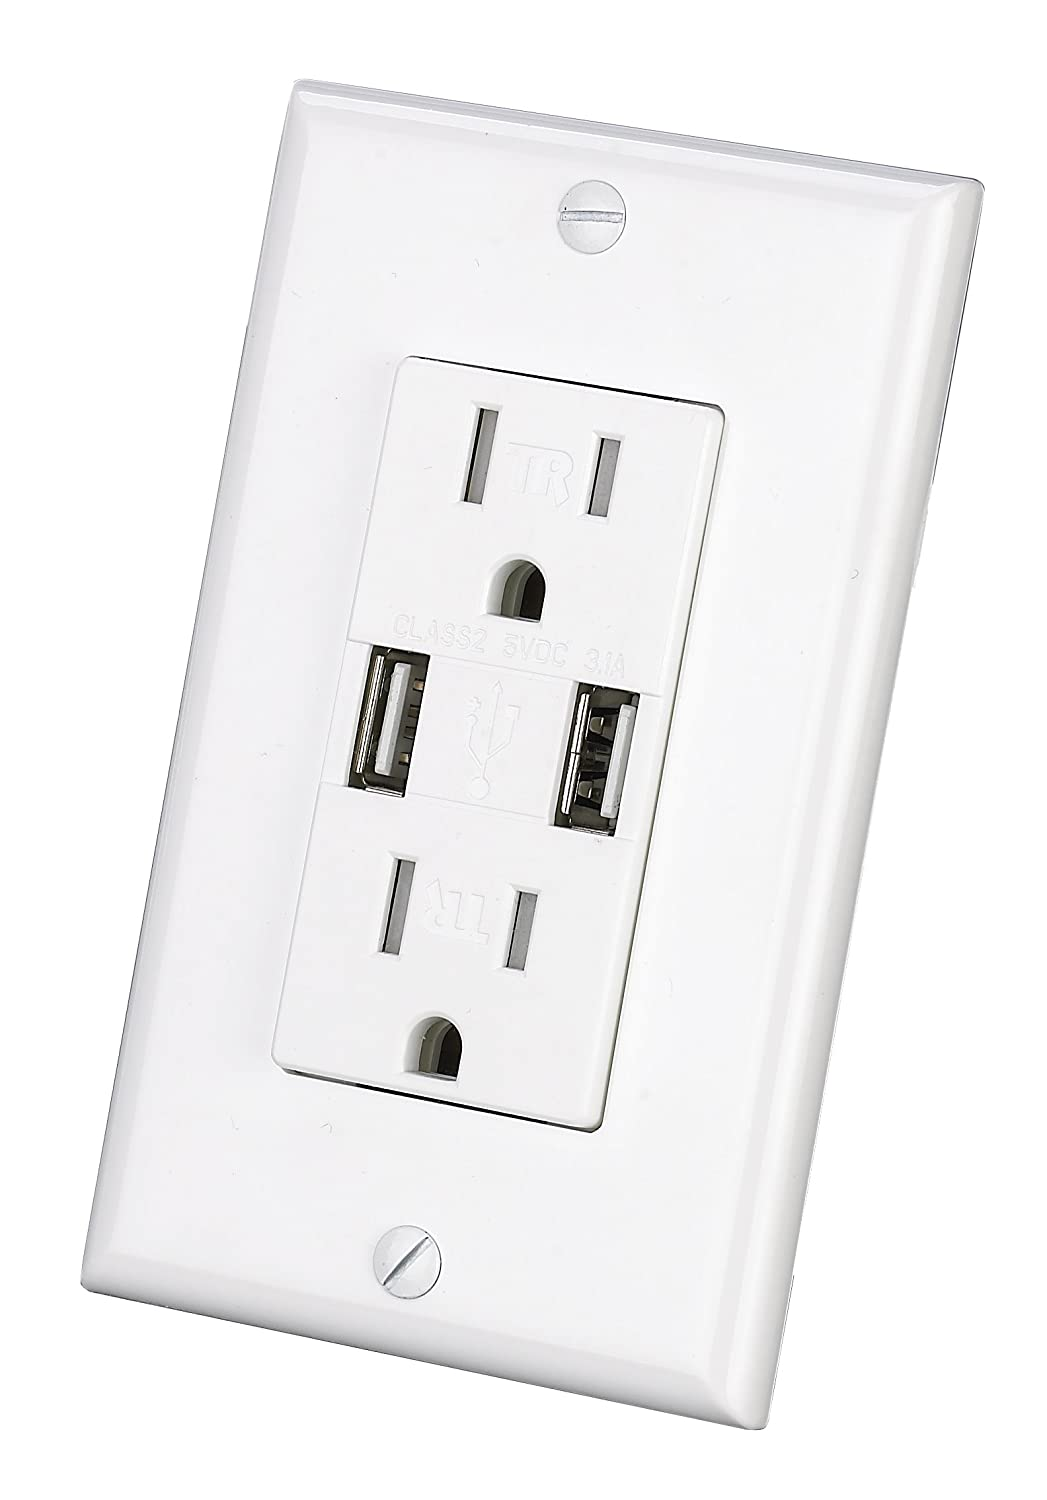 USB Charger Wall Outlet Dual High Speed Duplex Receptacle 15 Amp, Smart  4.8A Quick Charging Capability, Tamper Resistant Outlet Wall plate Included  UL ...